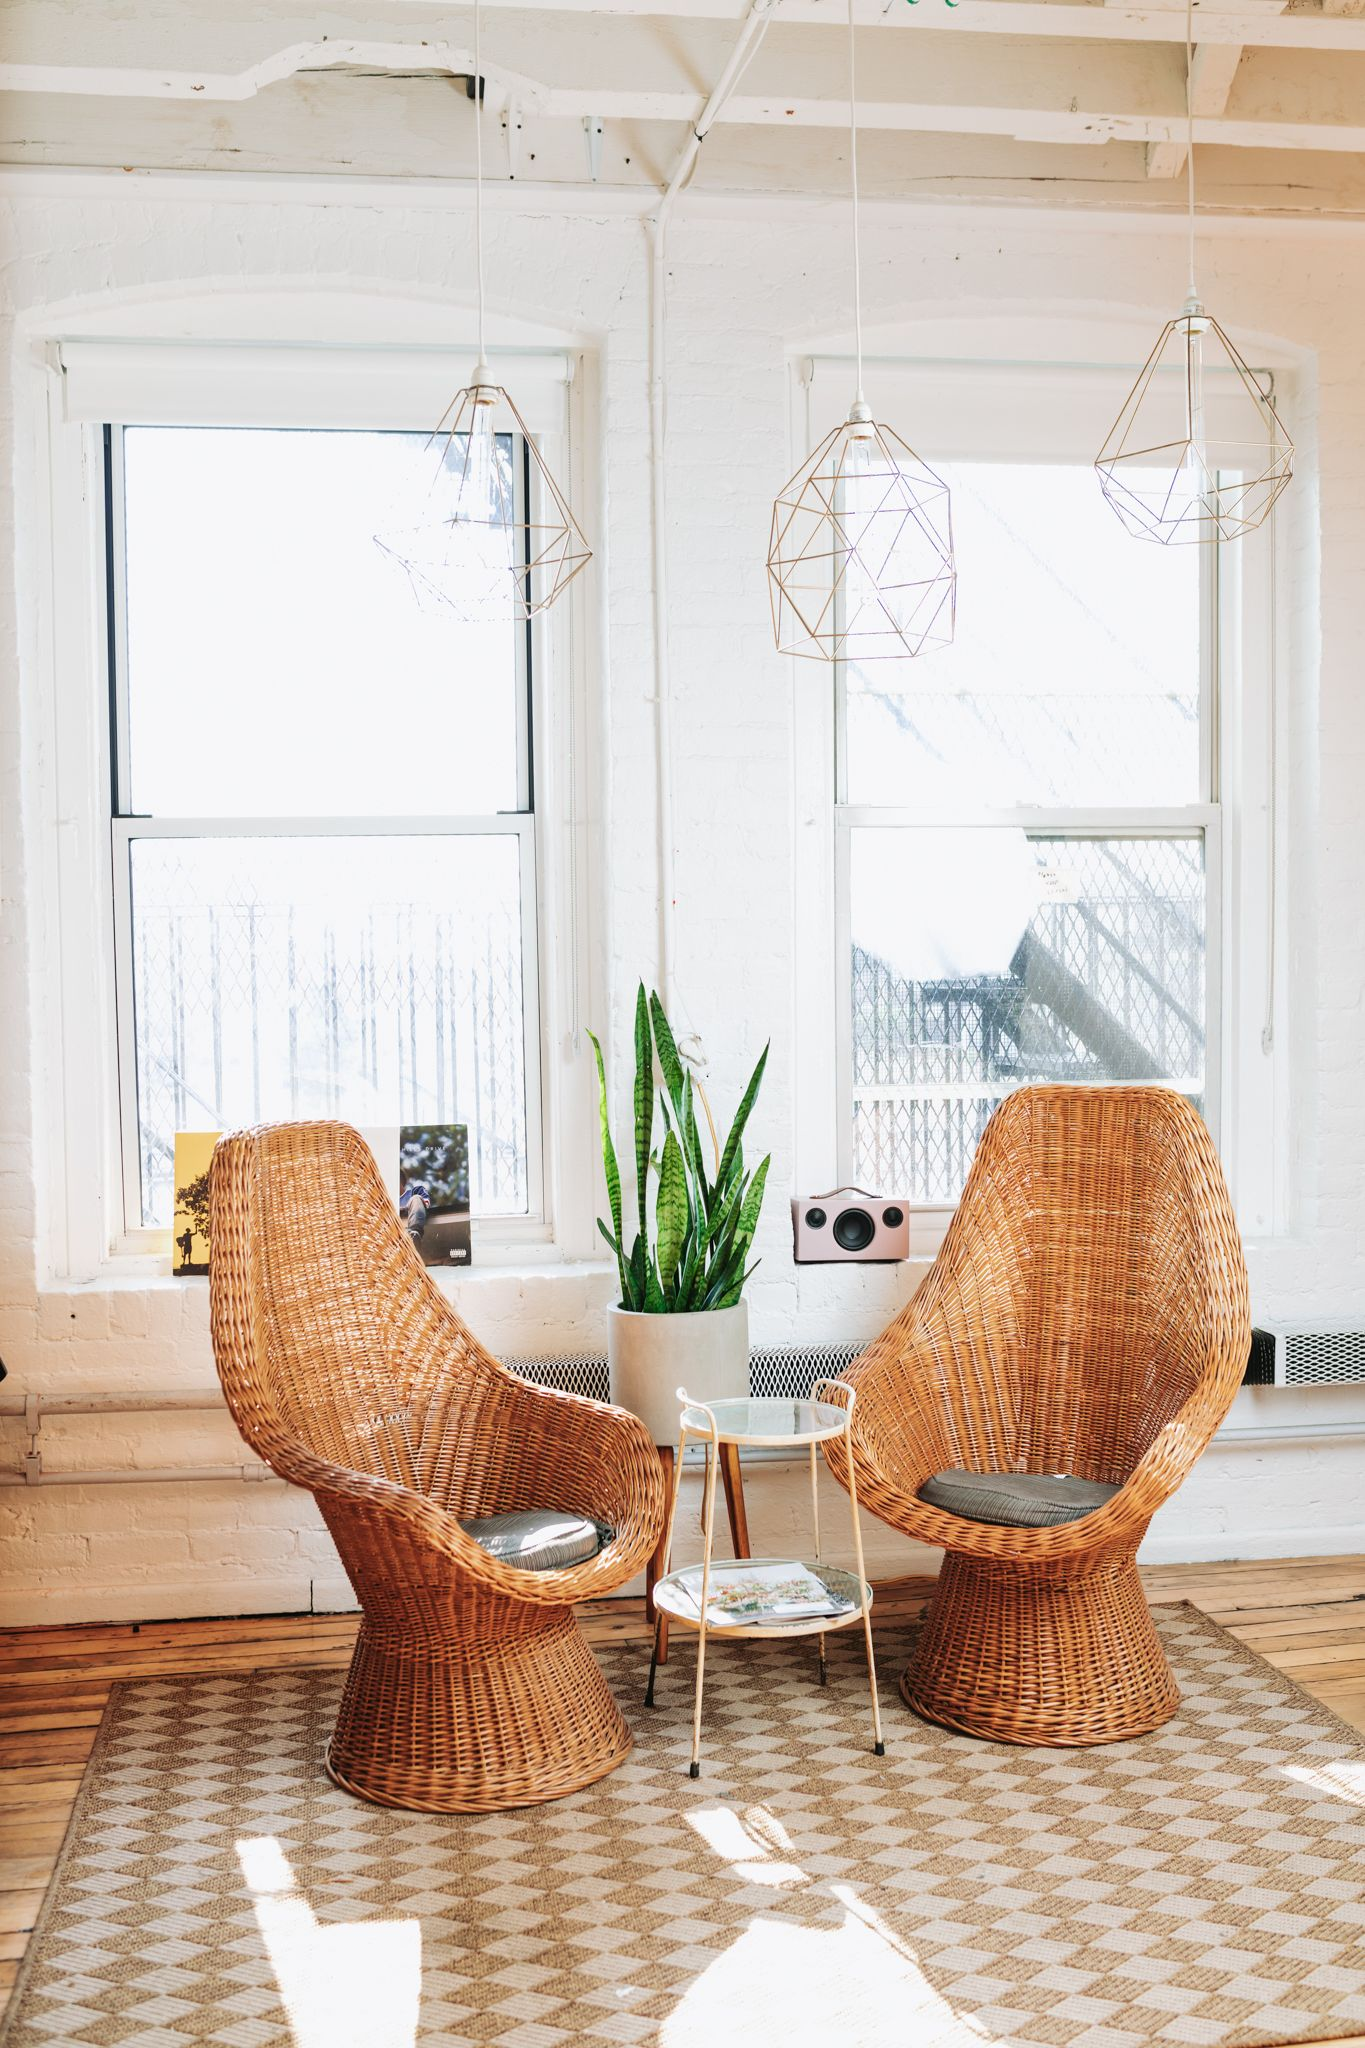 Join the Creativity Built Collective for an opportunity to develop your creative direction skills. With help from your fellow Builders, learn onset set decorating tips for your next client's photoshoot. #Bohemian #Furniture #Boho #BohoDesign #BohoChairs #BohoChair #RattanChairs #Rattan #OrangeDecor #BohoDecor #InteriorDesign #Photoshoot #CreativeDirector #Creative #CreativeIdeas #Set #Onset #SetDecor #SetIdeas #ApartmentDecor #ApartmentGoals #Plants #Interior